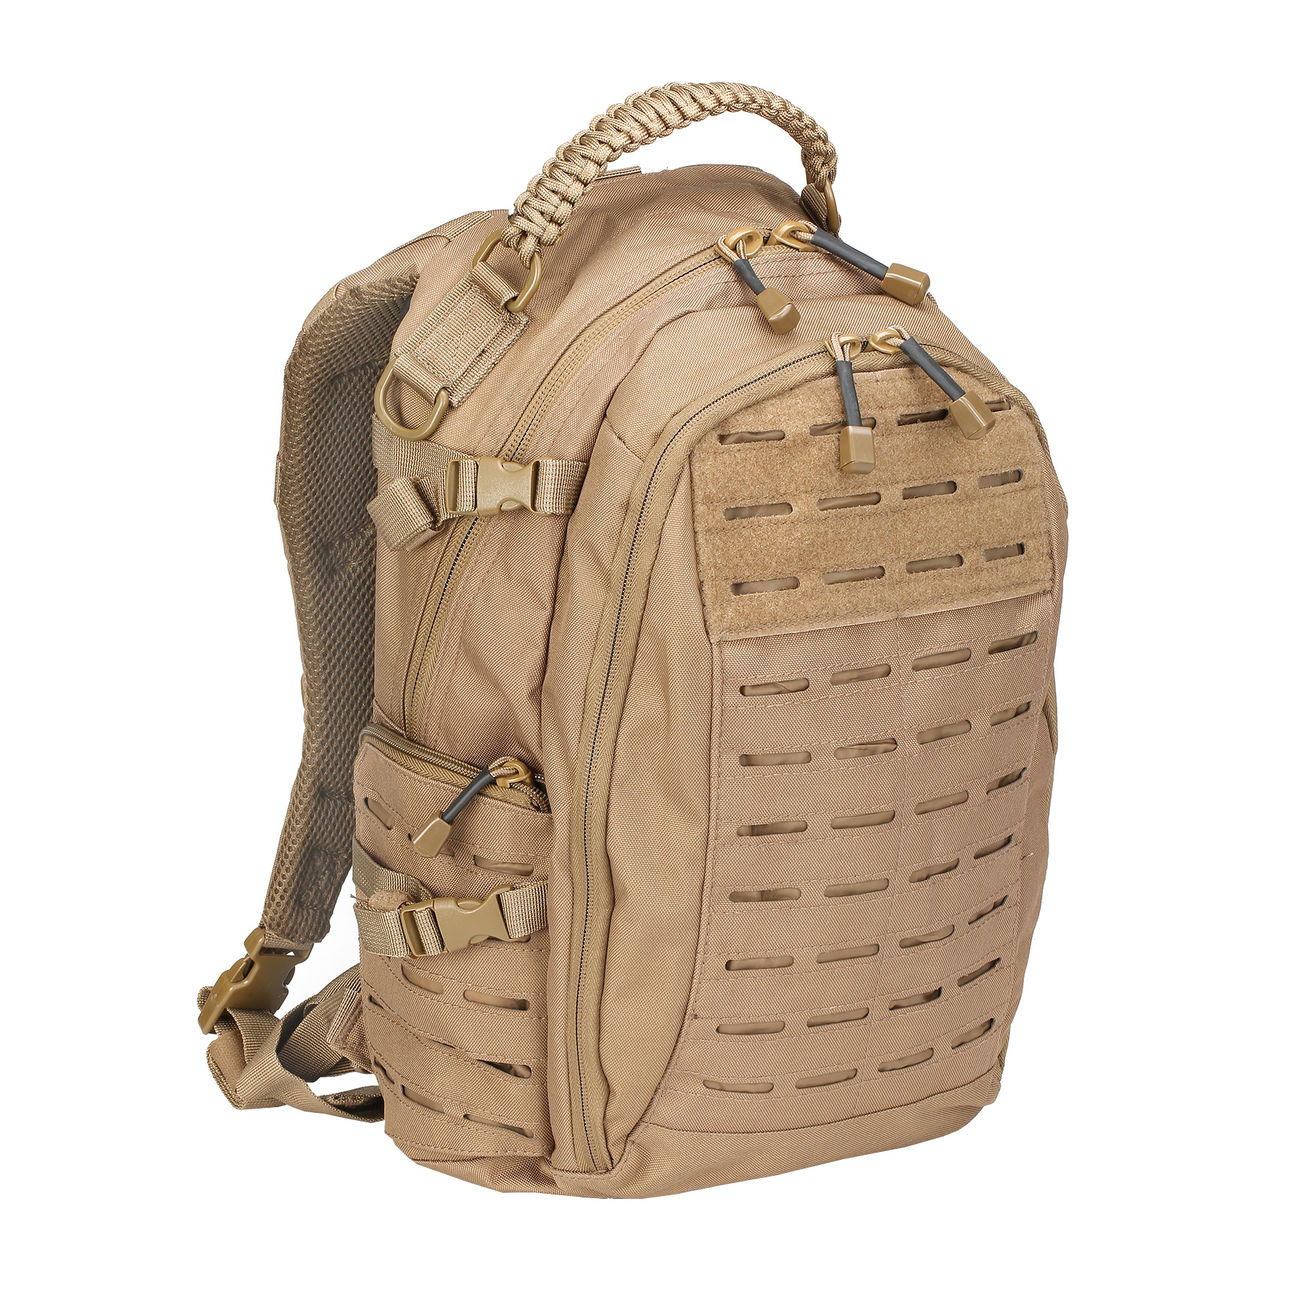 Mil-Tec Rucksack Mission Pack Laser Cut Small dark coyote 0